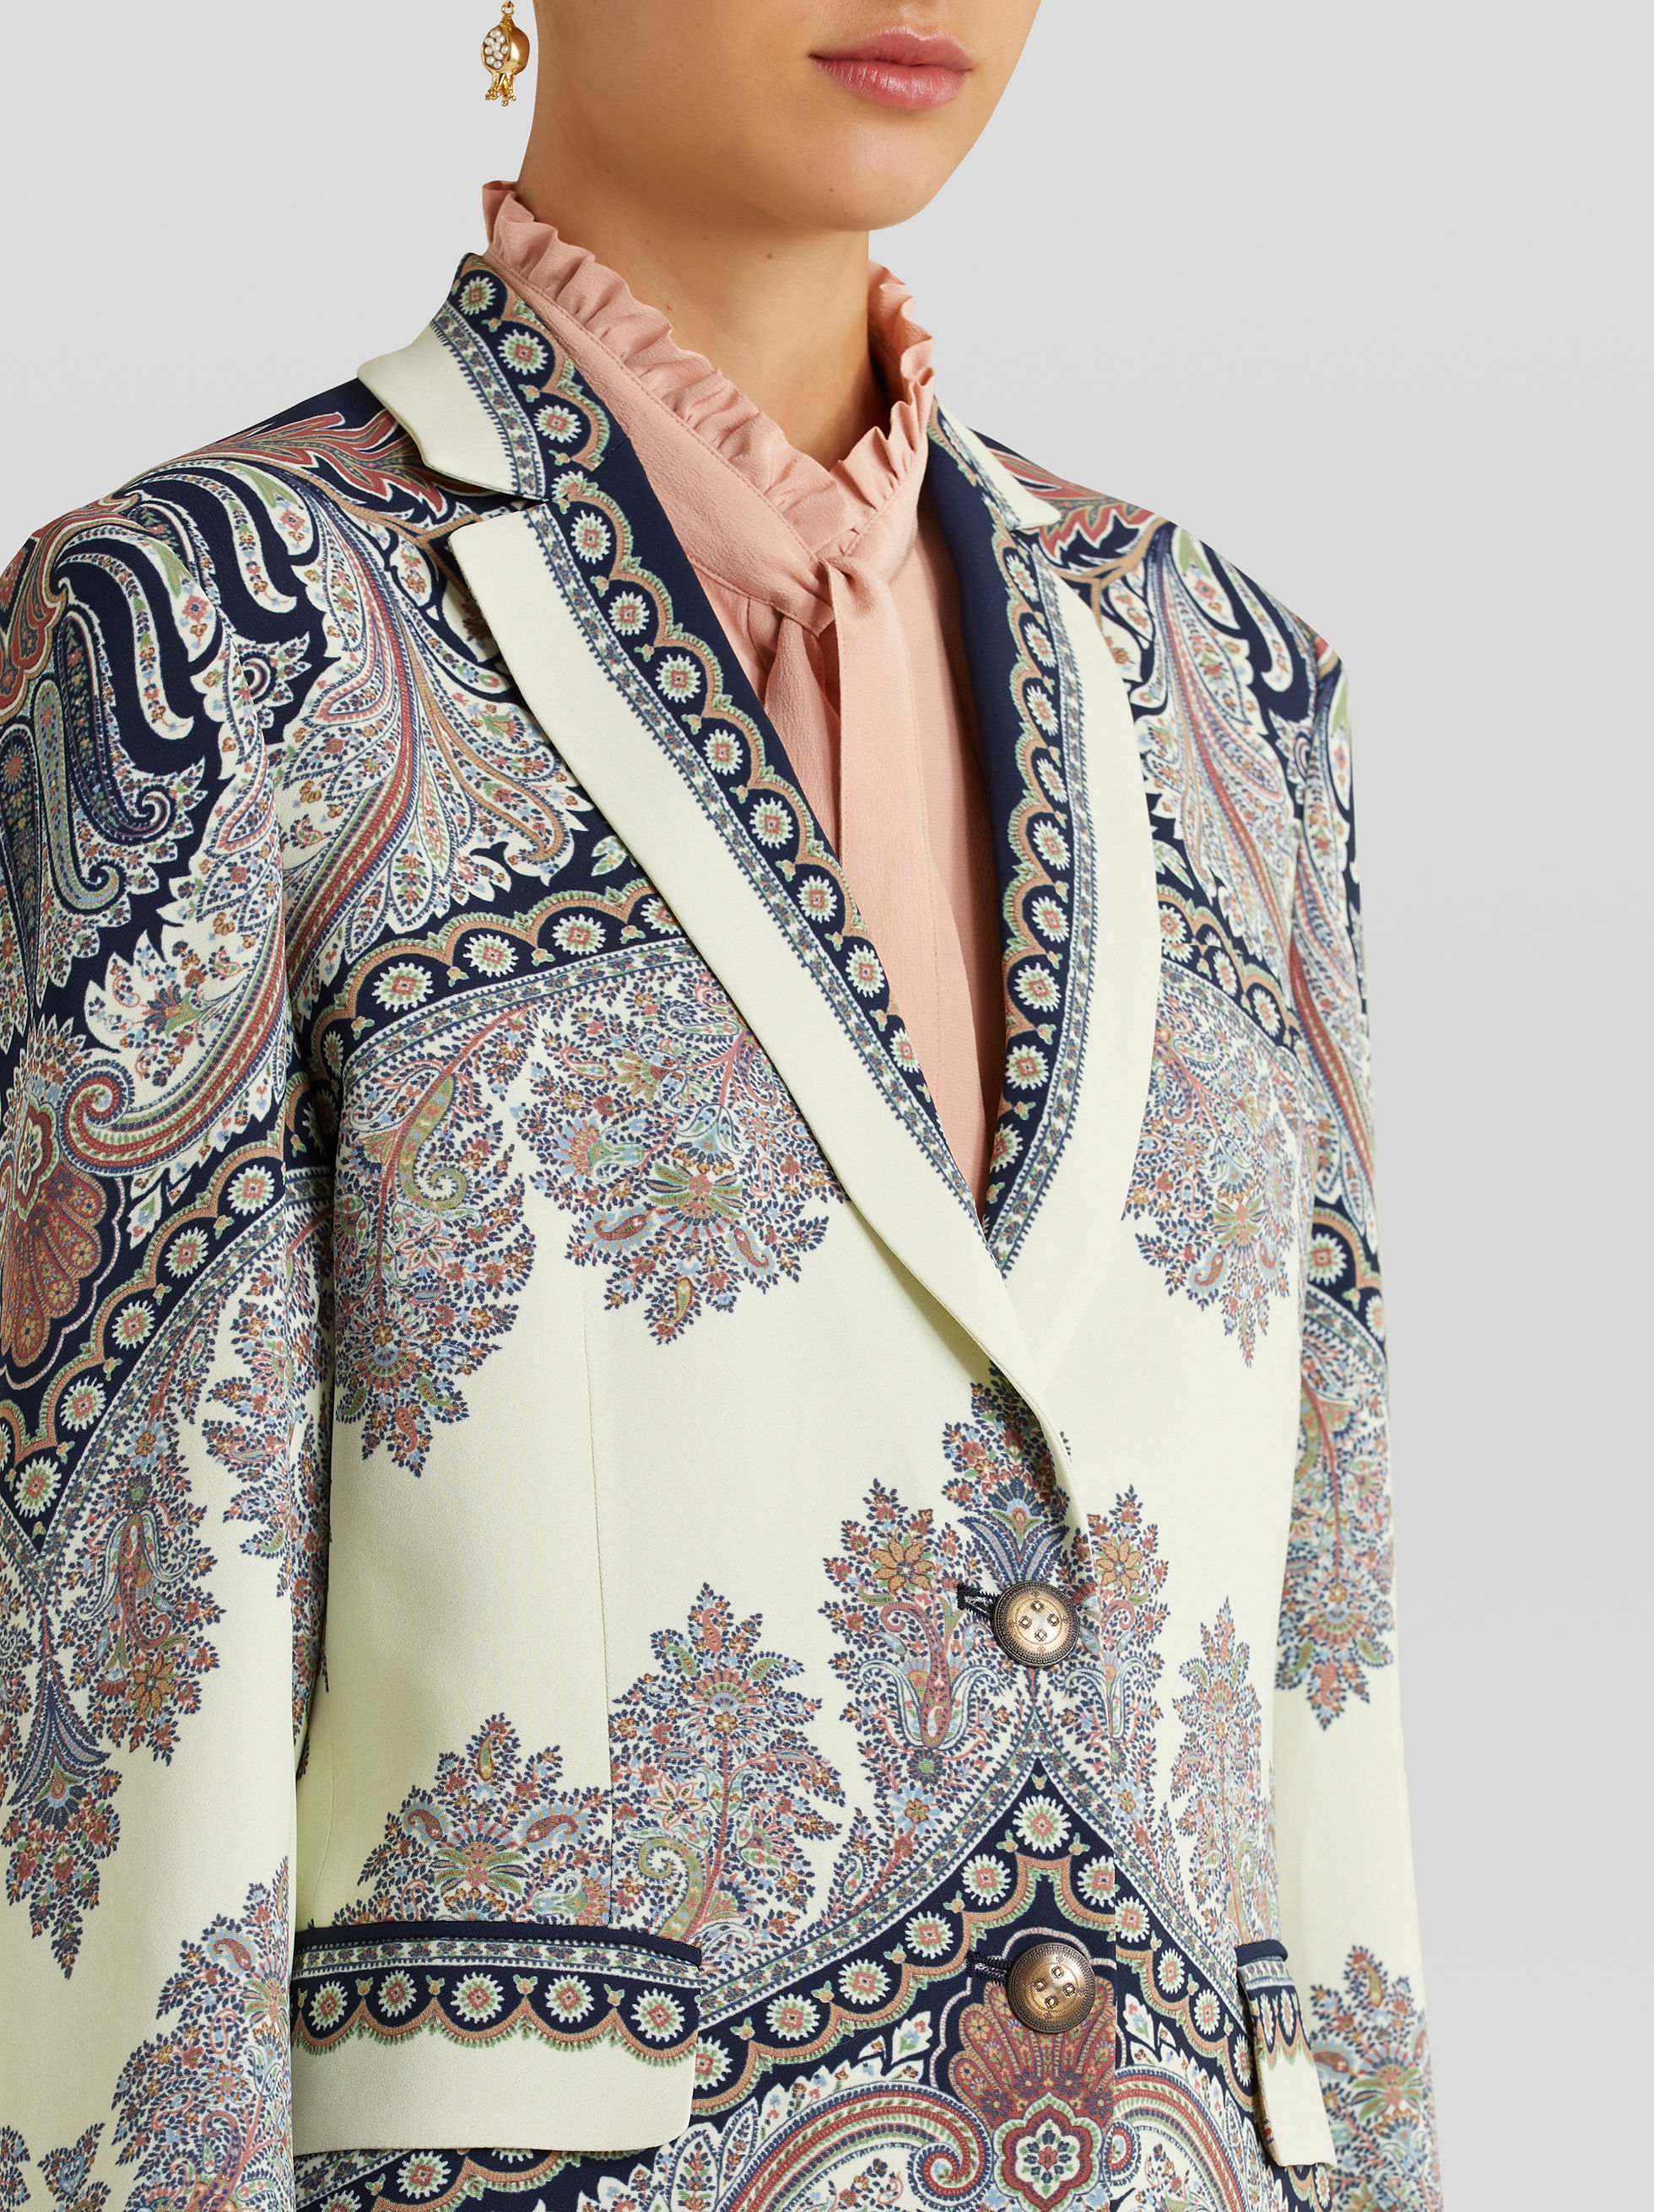 TAILORED FLORAL PAISLEY PRINT JACKET